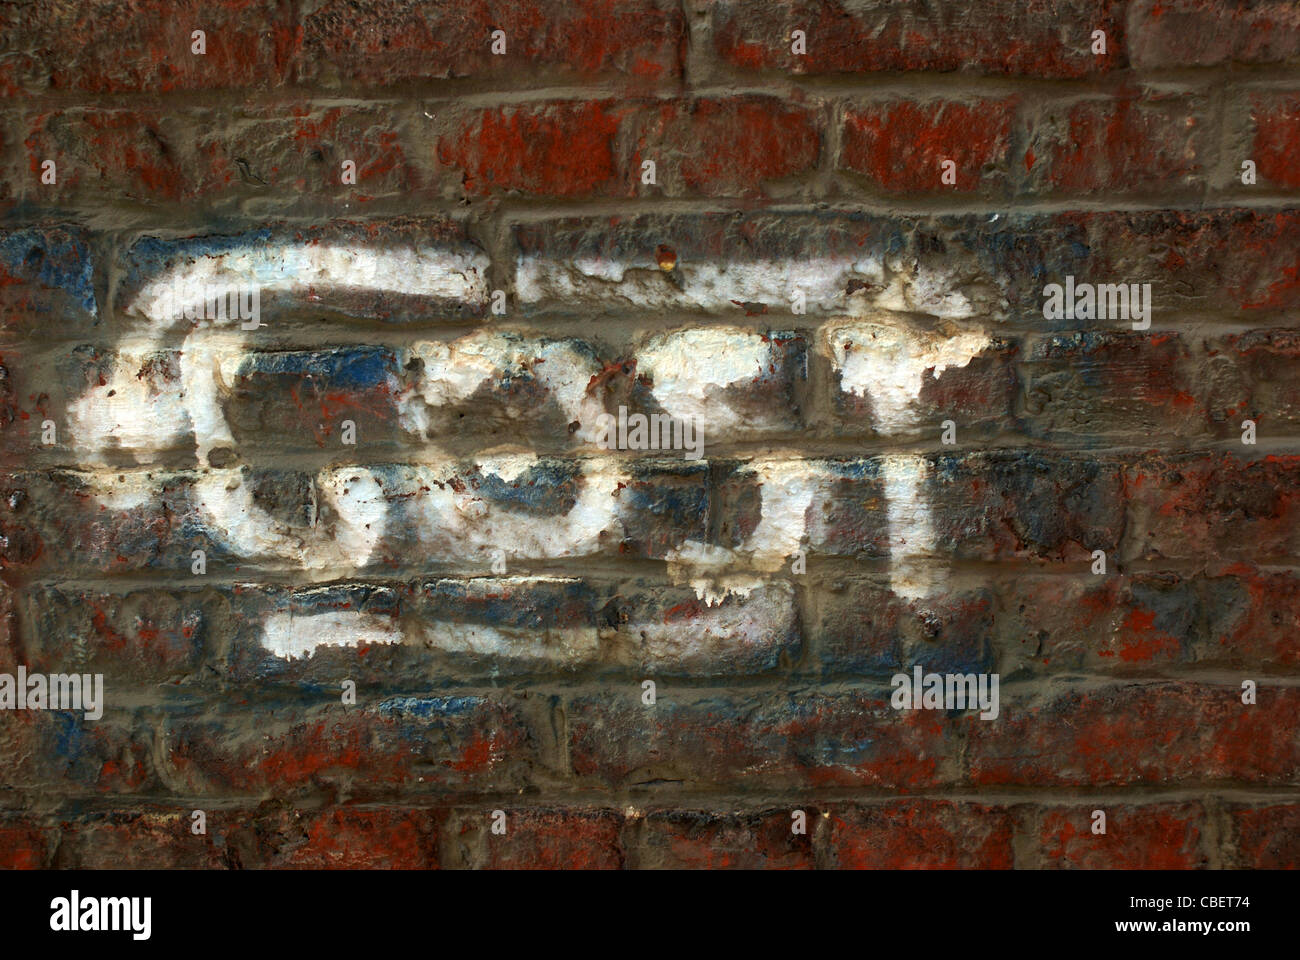 Lost word written on a brick wall - Stock Image